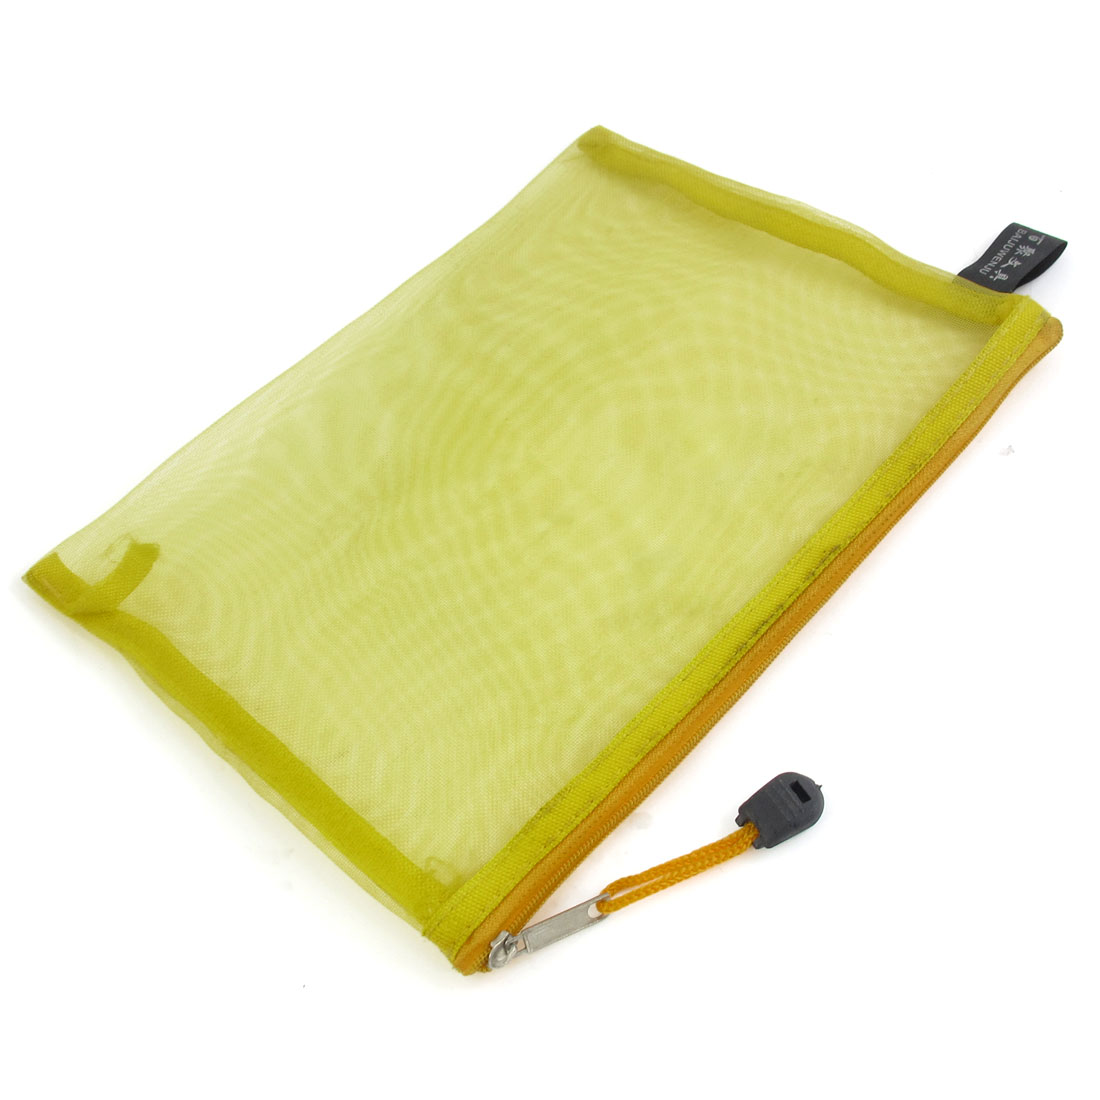 Zip Up Nylon Mesh A5 Paper Document File Pen Bag Holder Organizer Yellow